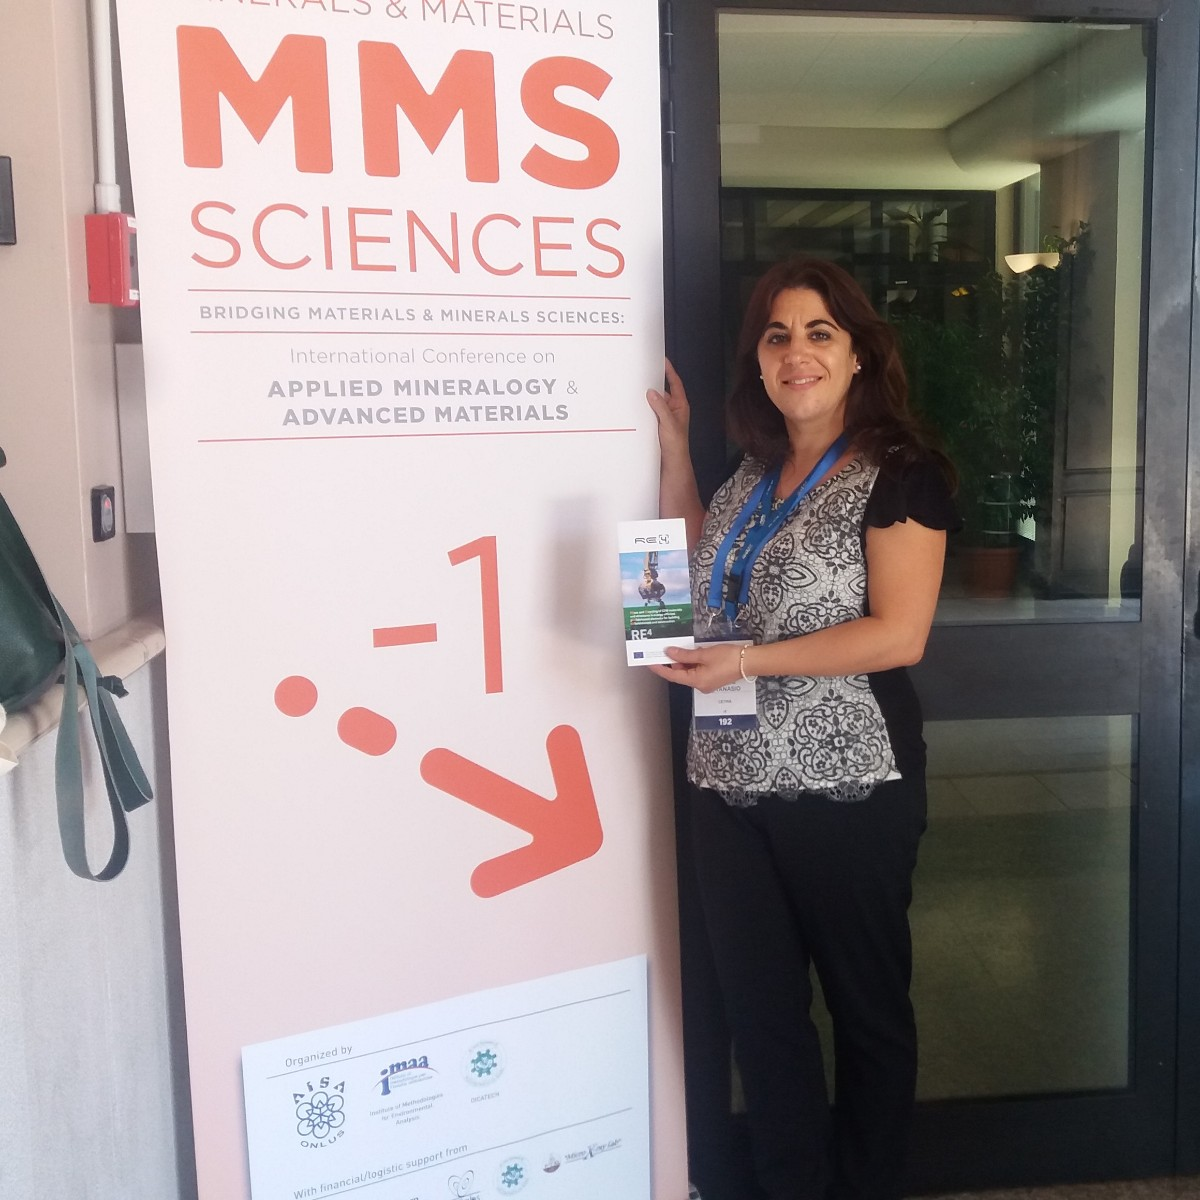 MMS Sciences